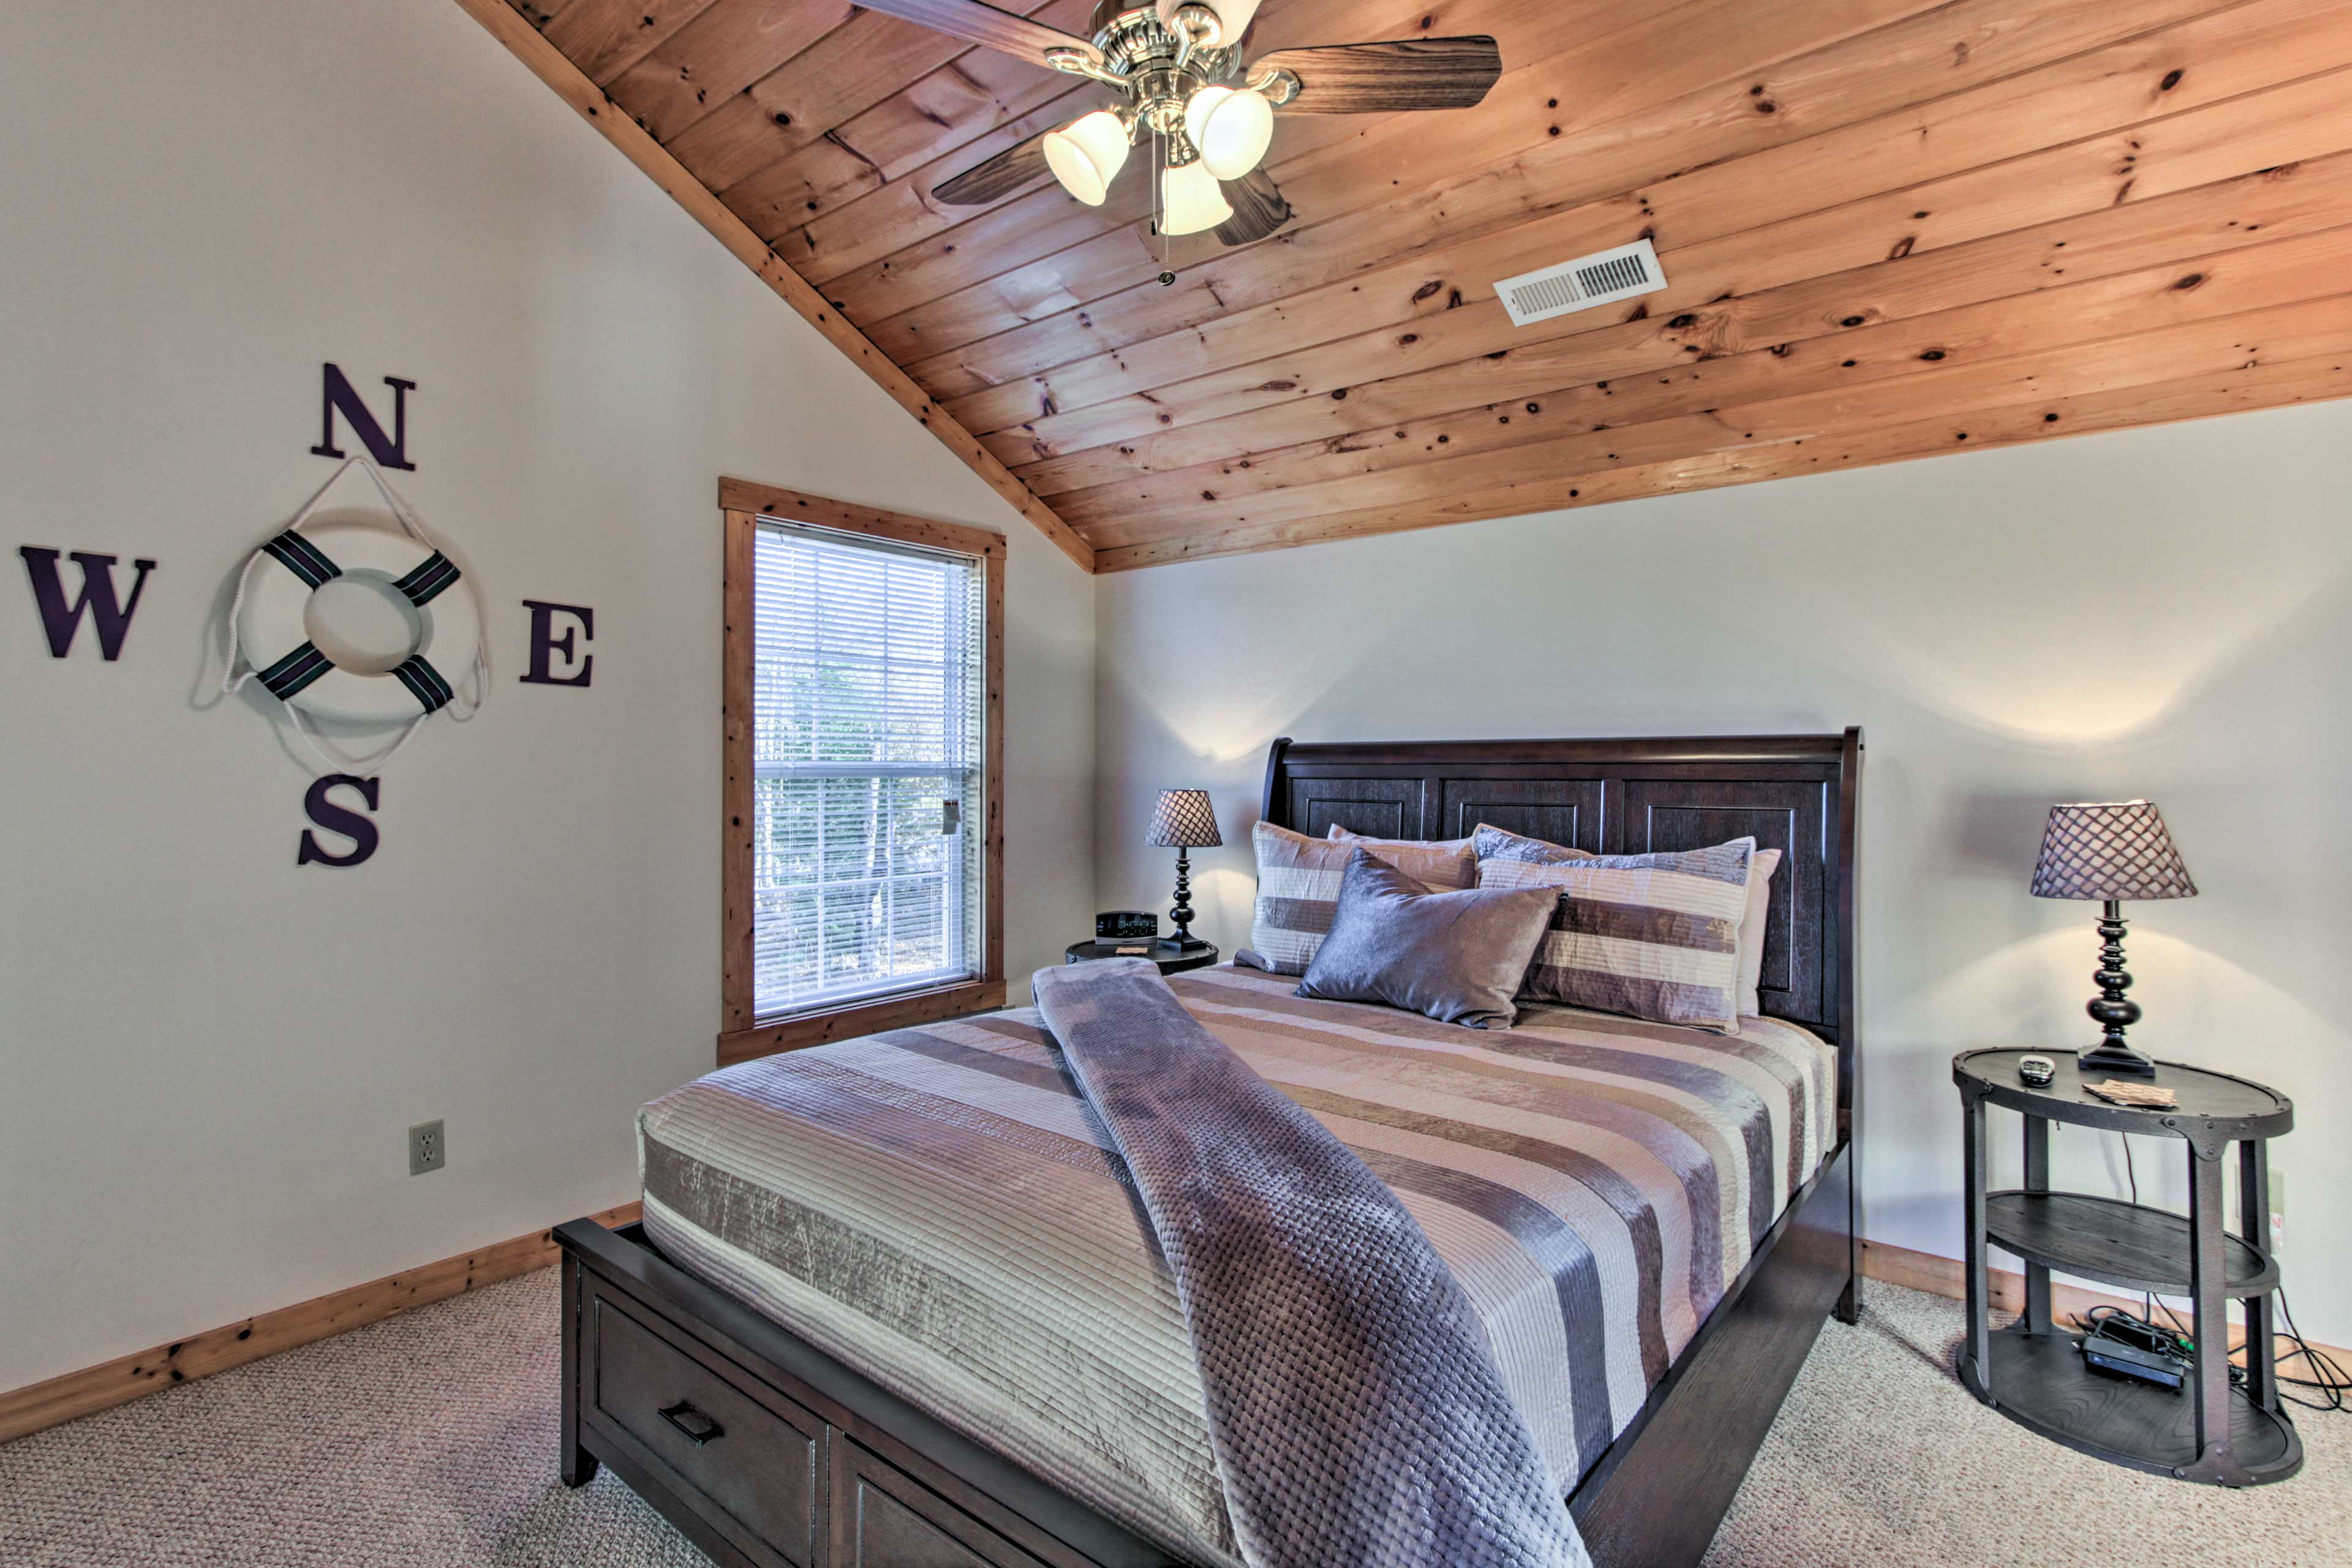 The second bedroom can be found upstairs.